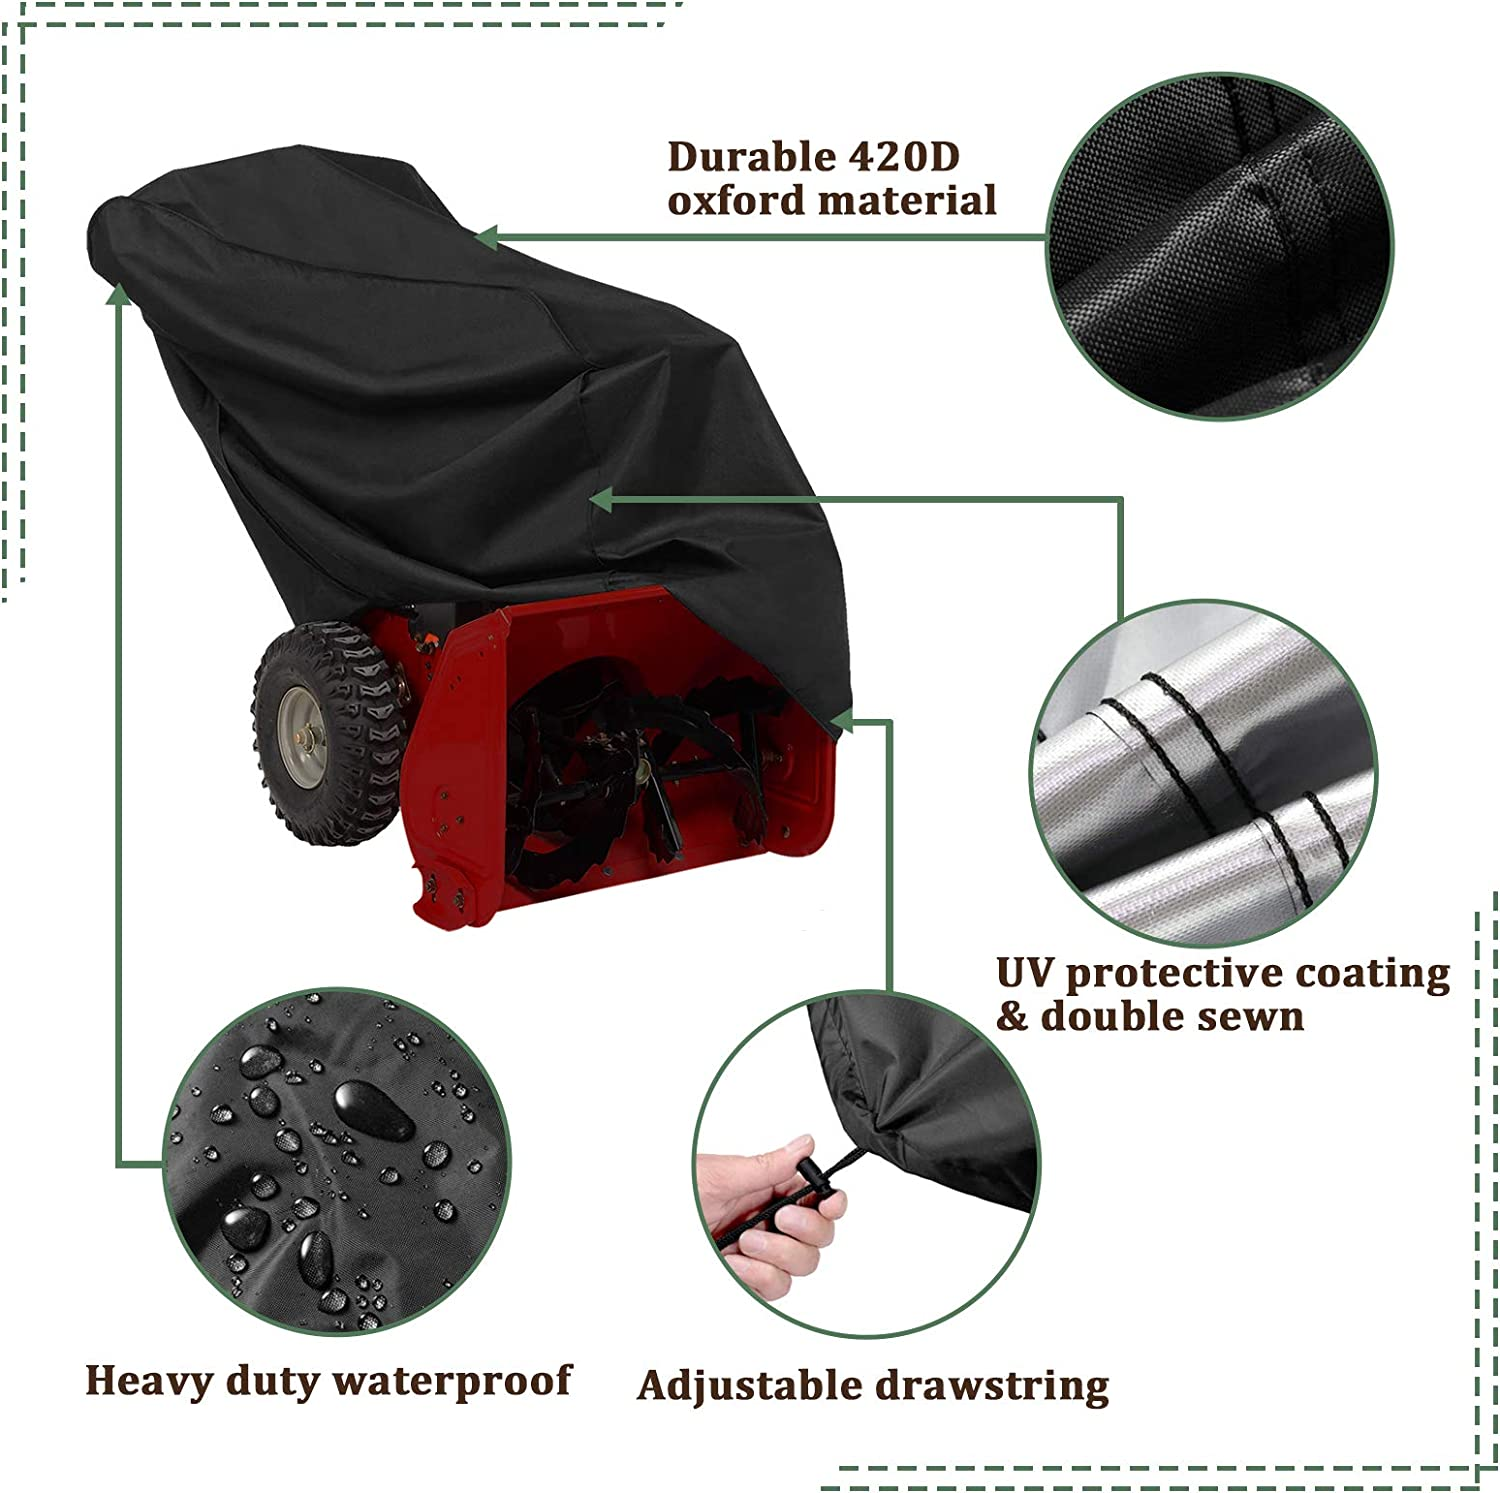 50x35x43In Black Design with Double Seam and Drawstring AKEfit Snow Thrower Cover Waterproof UV Protection Heavy Duty Snow Blower Cover Durable Patio Cover for Electric Snowblowers